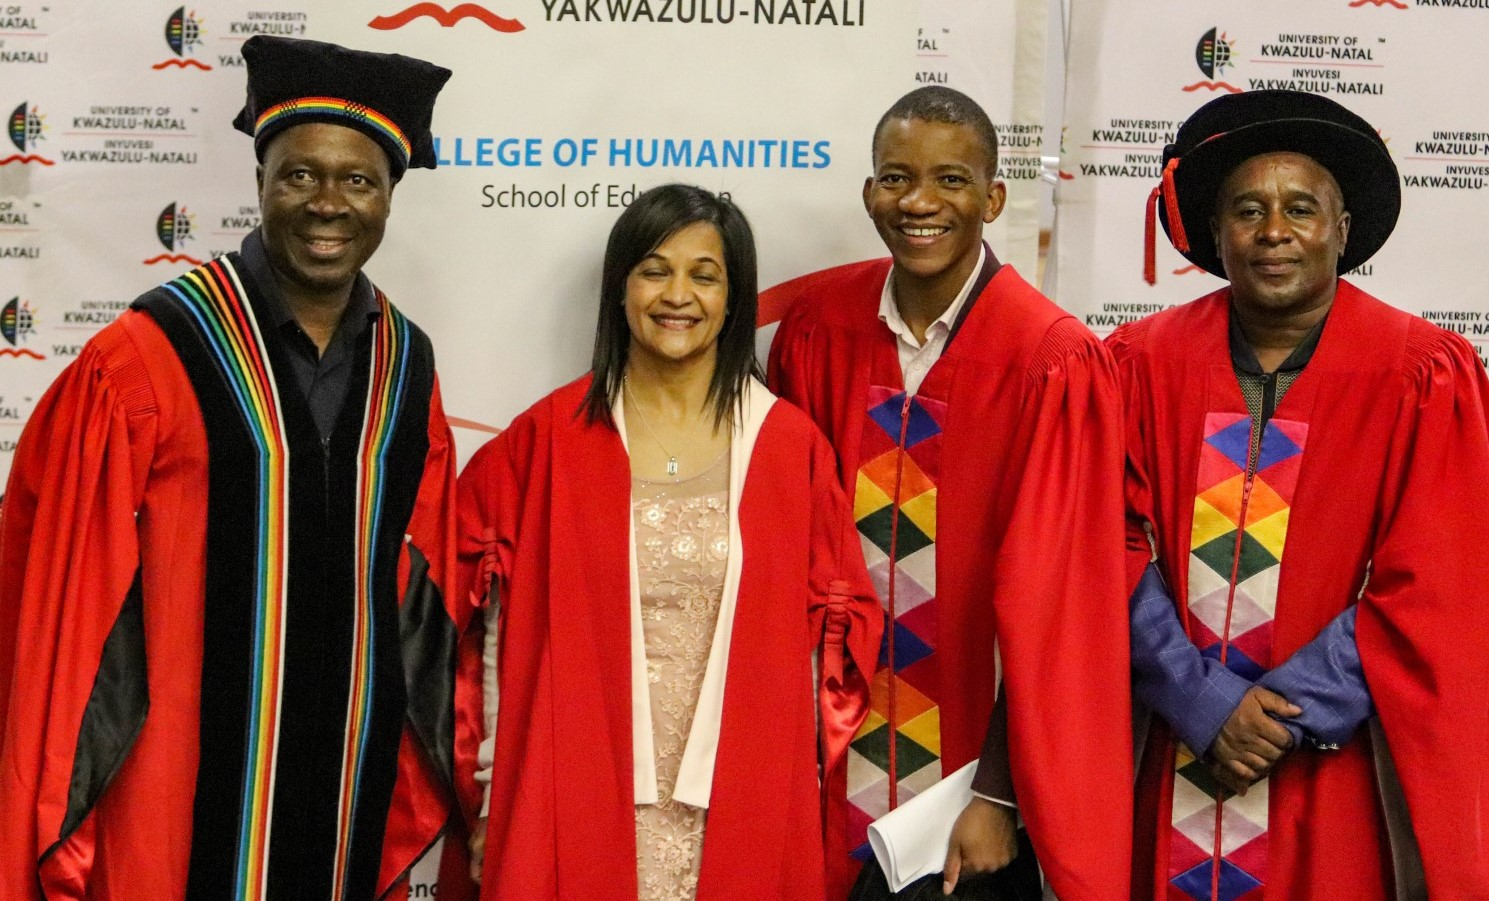 From left: DVC and Head of the College of Humanities Professor Nhlanhla Mkhize; Professor Sarah Bansilal; Dean and Head of the School of Education Professor Thabo Msibi and College Dean of Research Professor Pholoho Morojele.